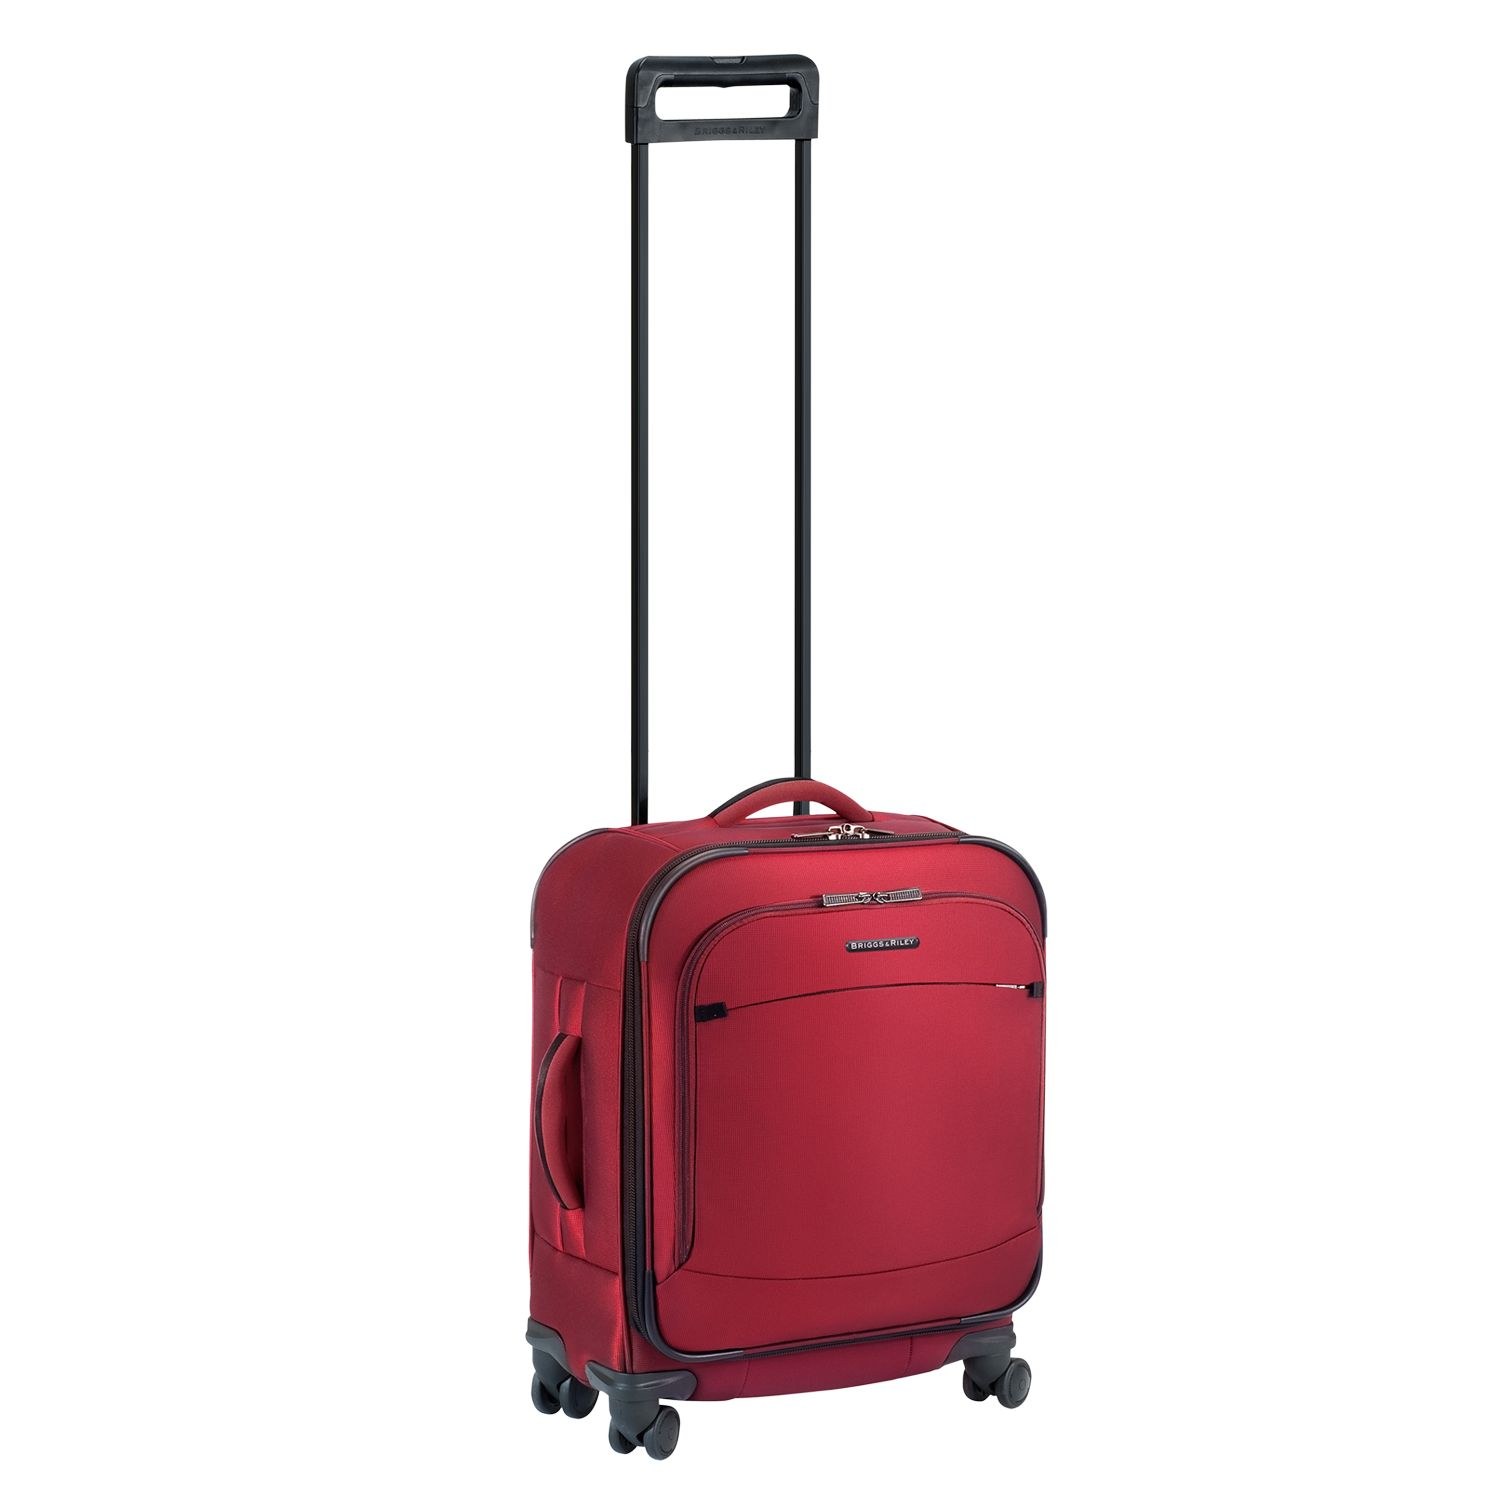 Briggs & Riley Transcend 200 Series 4-Wheel Spinner Suitcase, Sunset, Cabin